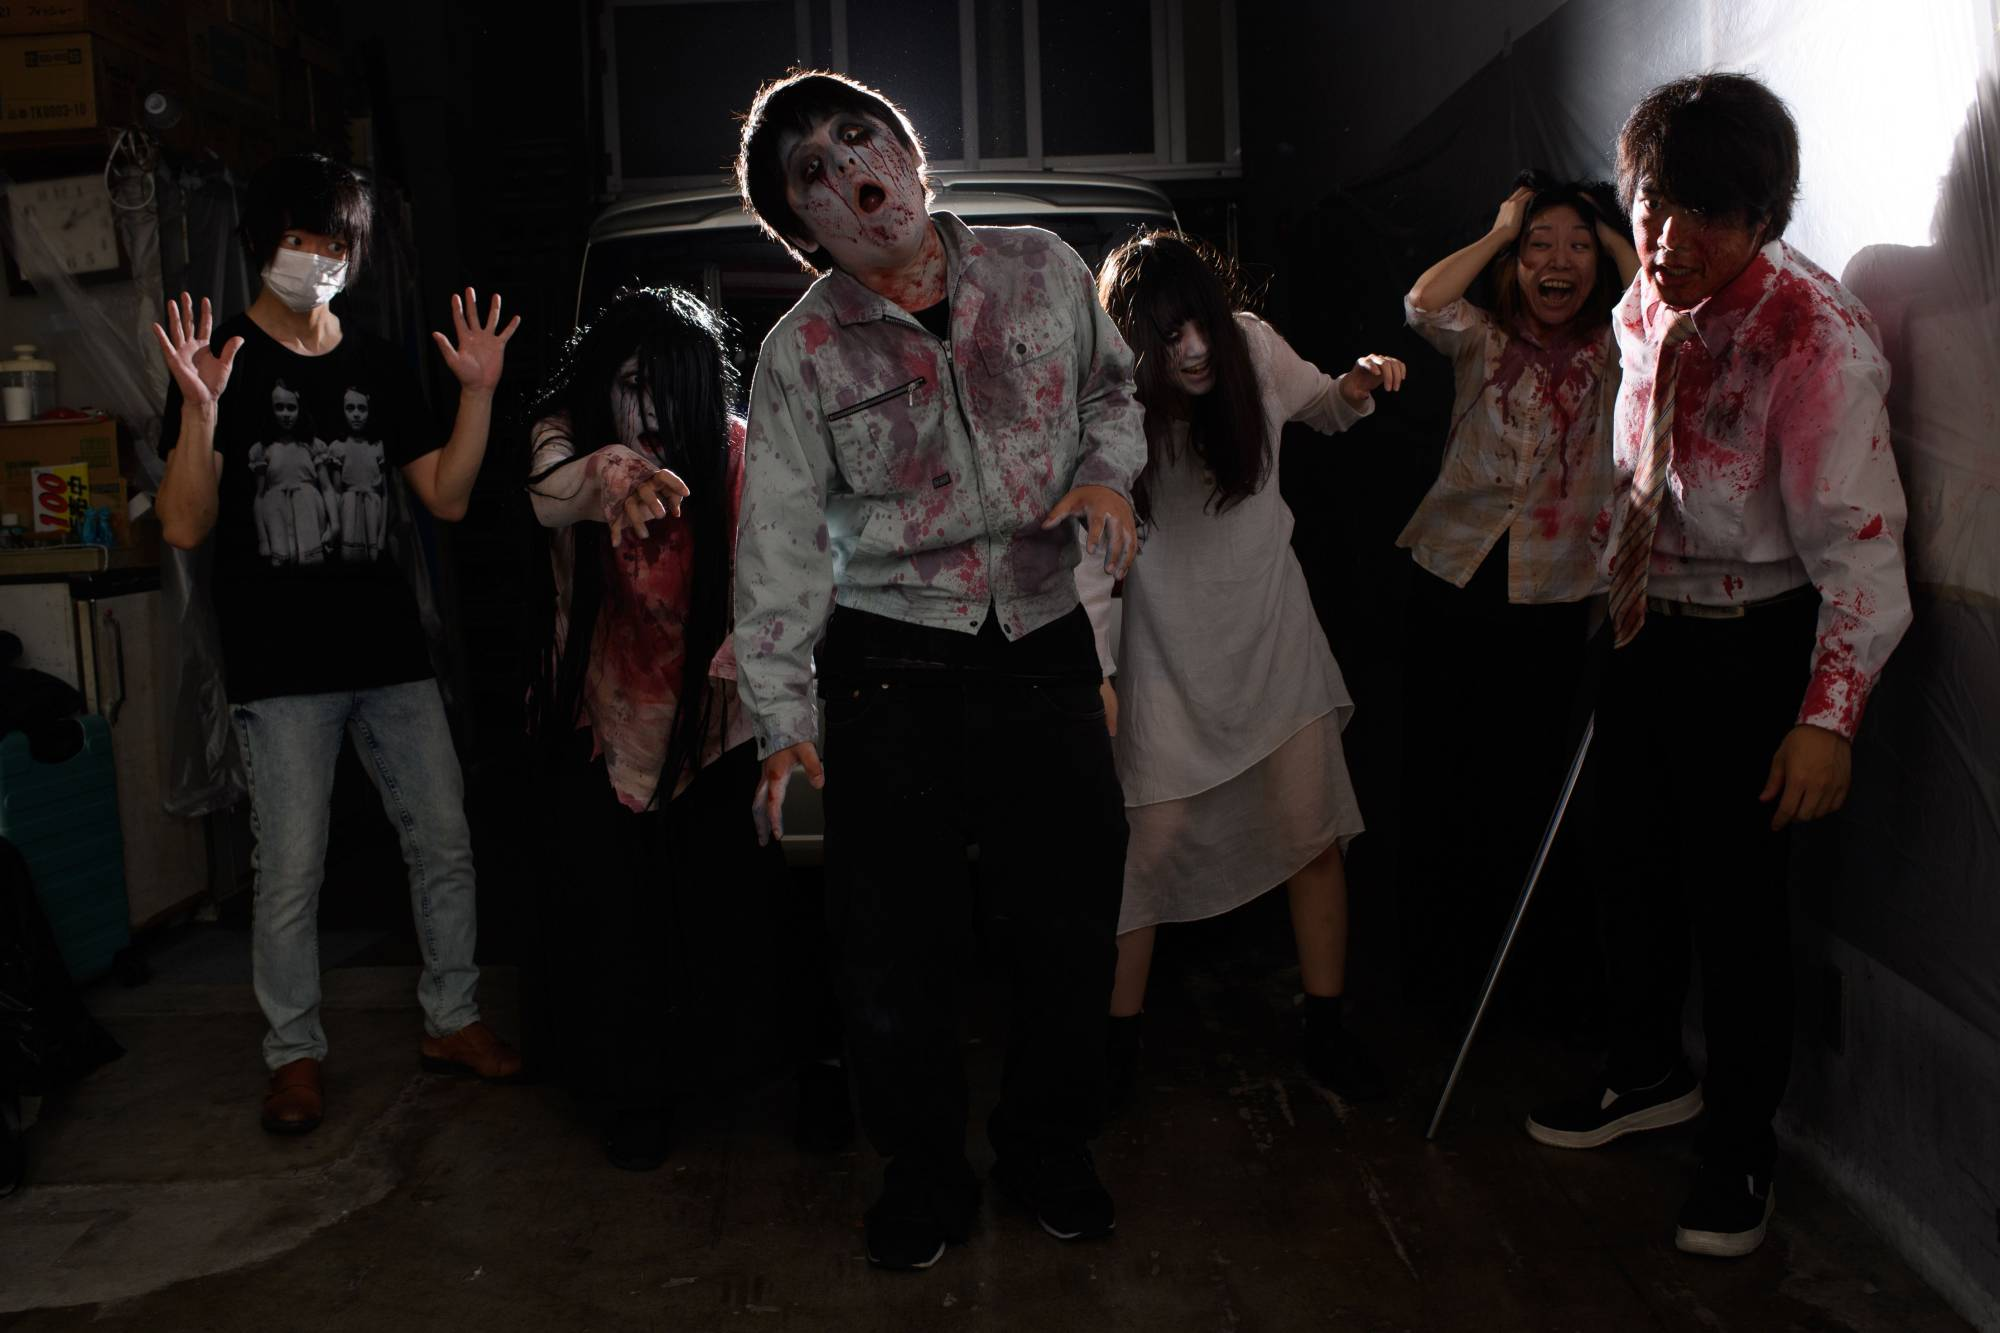 The horror of the haunted house stays firmly out of reach, with guests being safely enclosed in their cars. | AFP-JIJI